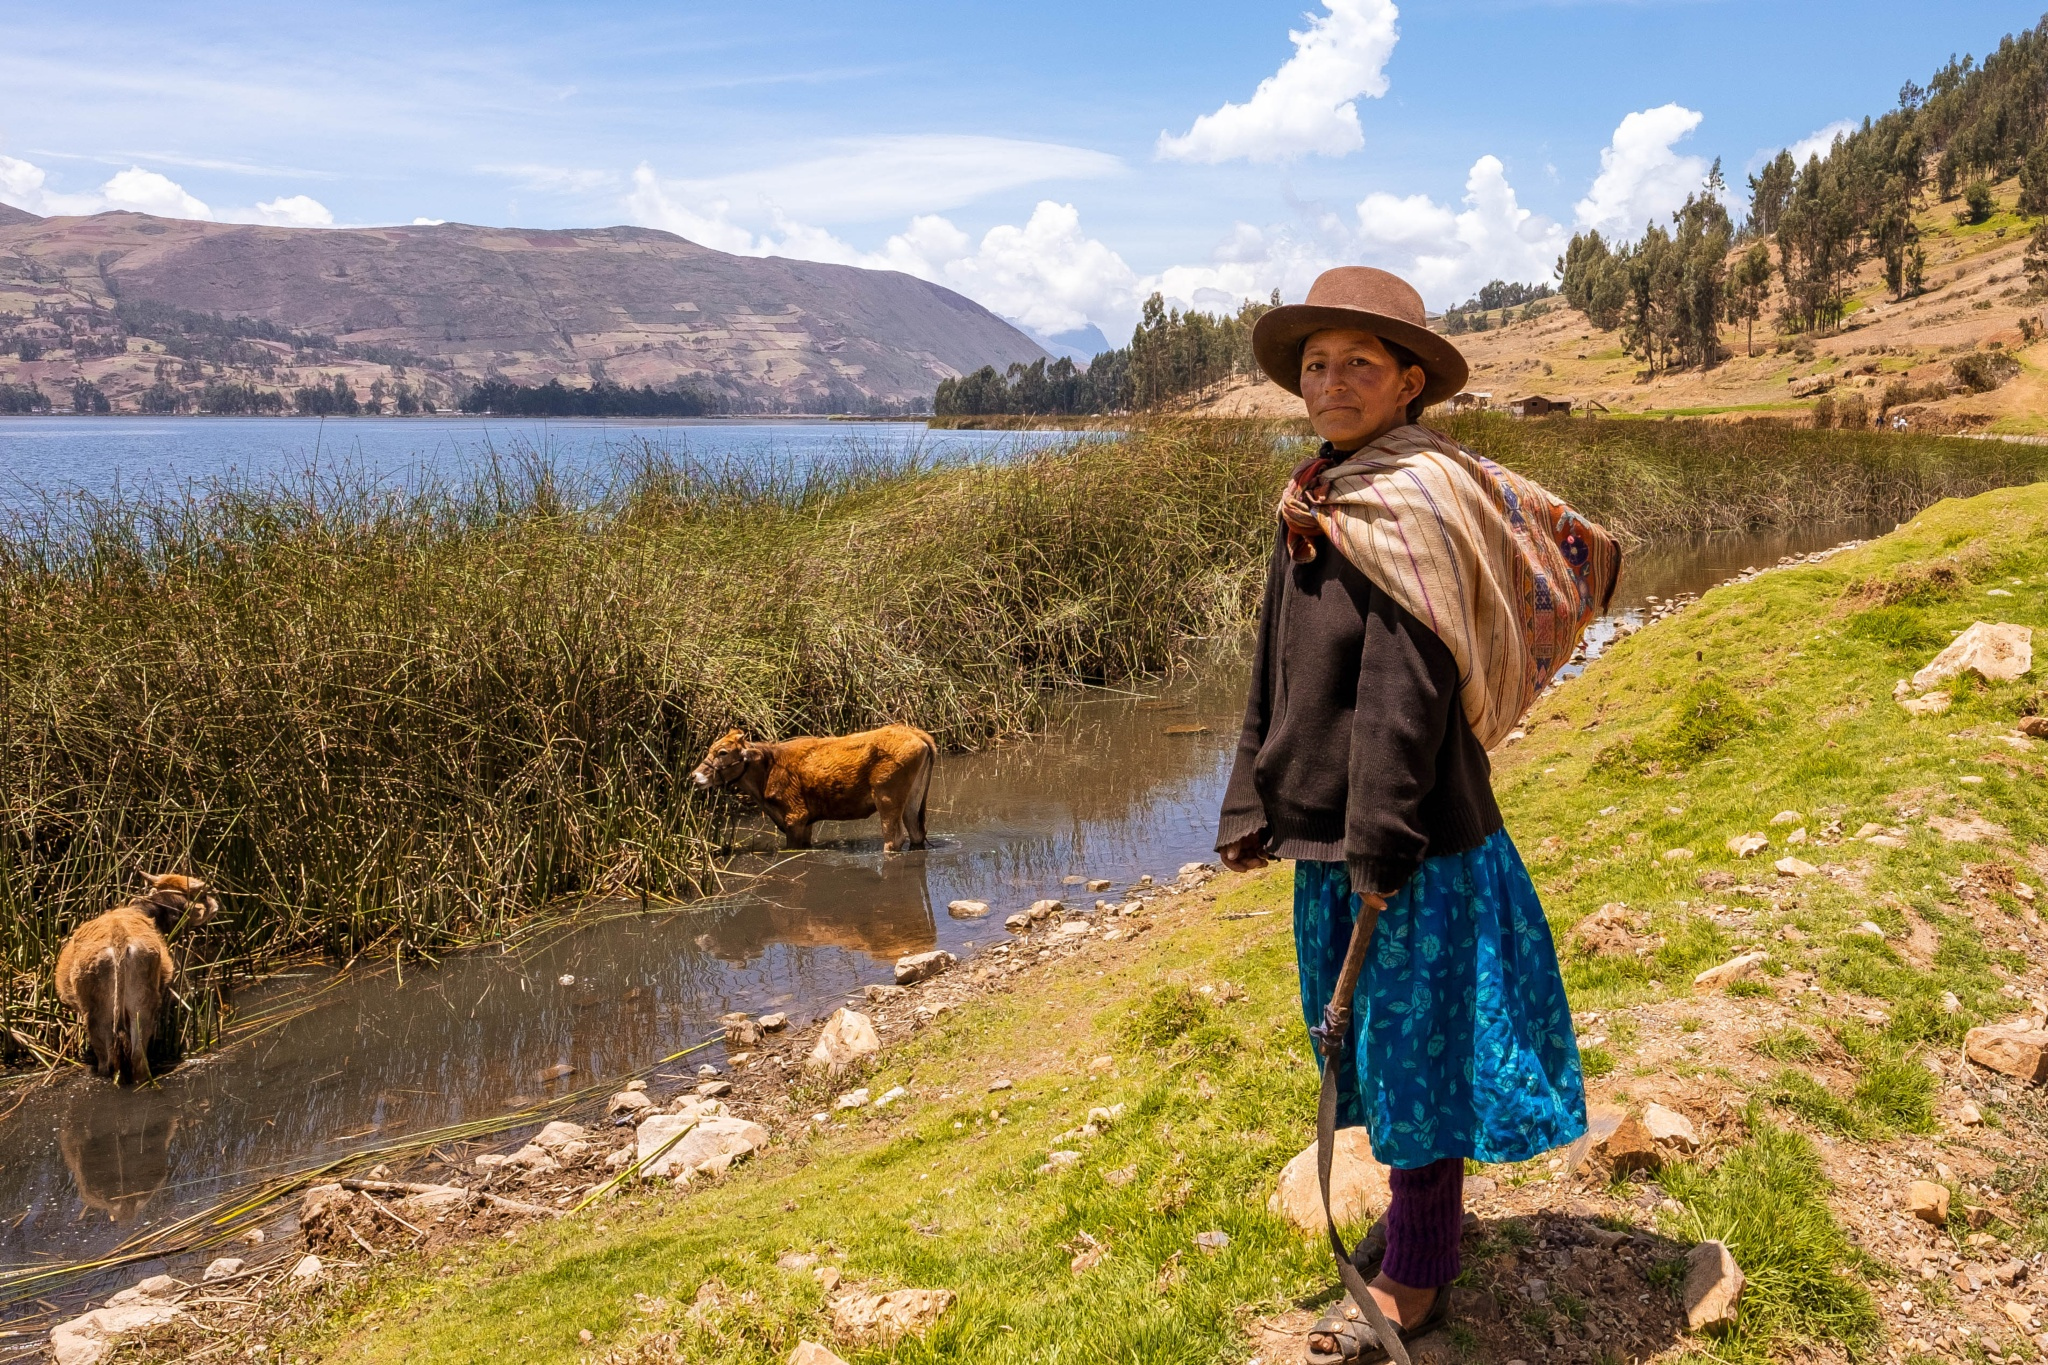 Andes Young Woman  by Jose M